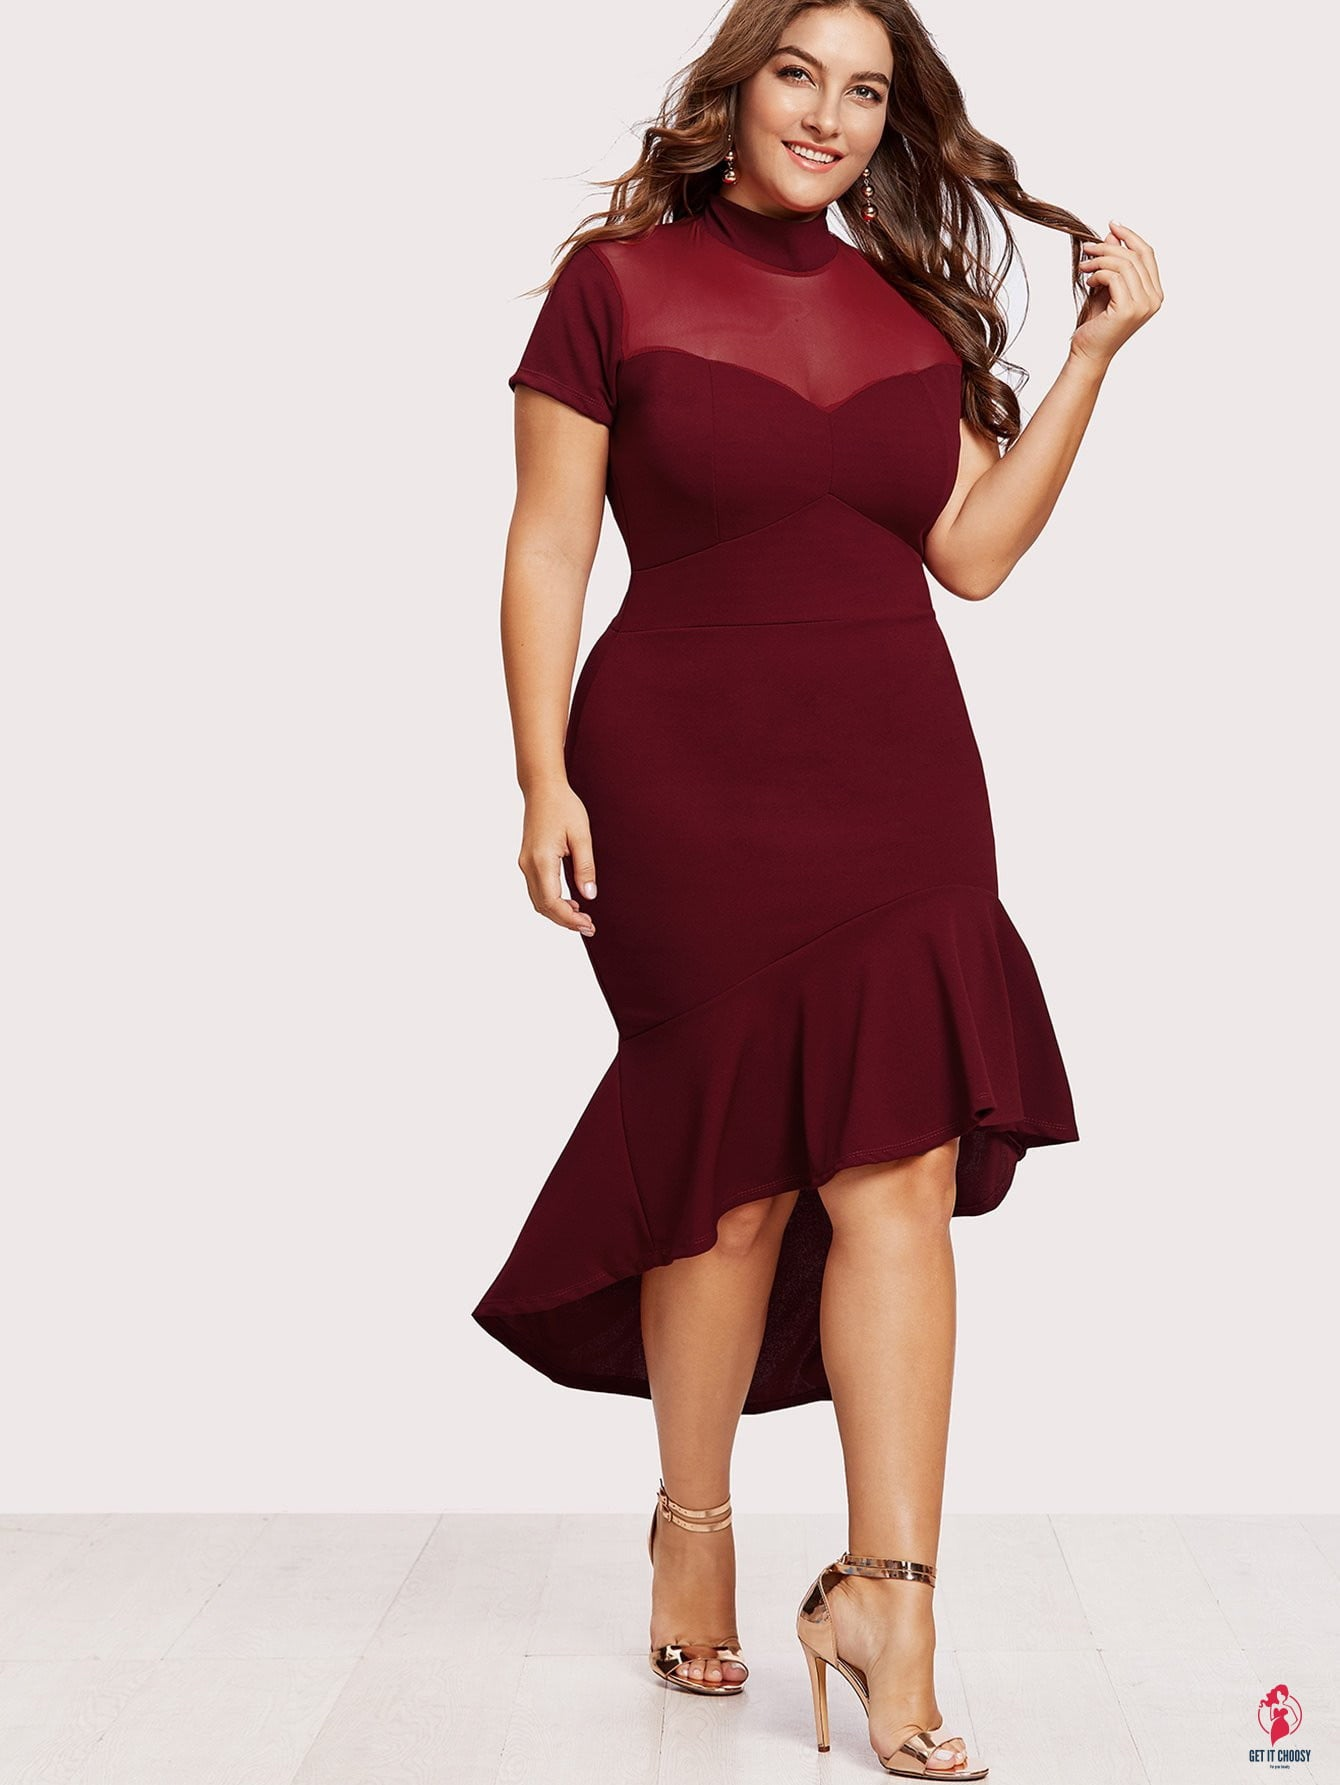 Plus Mesh Insert Frill Dip Hem Dress by Getitchoosy